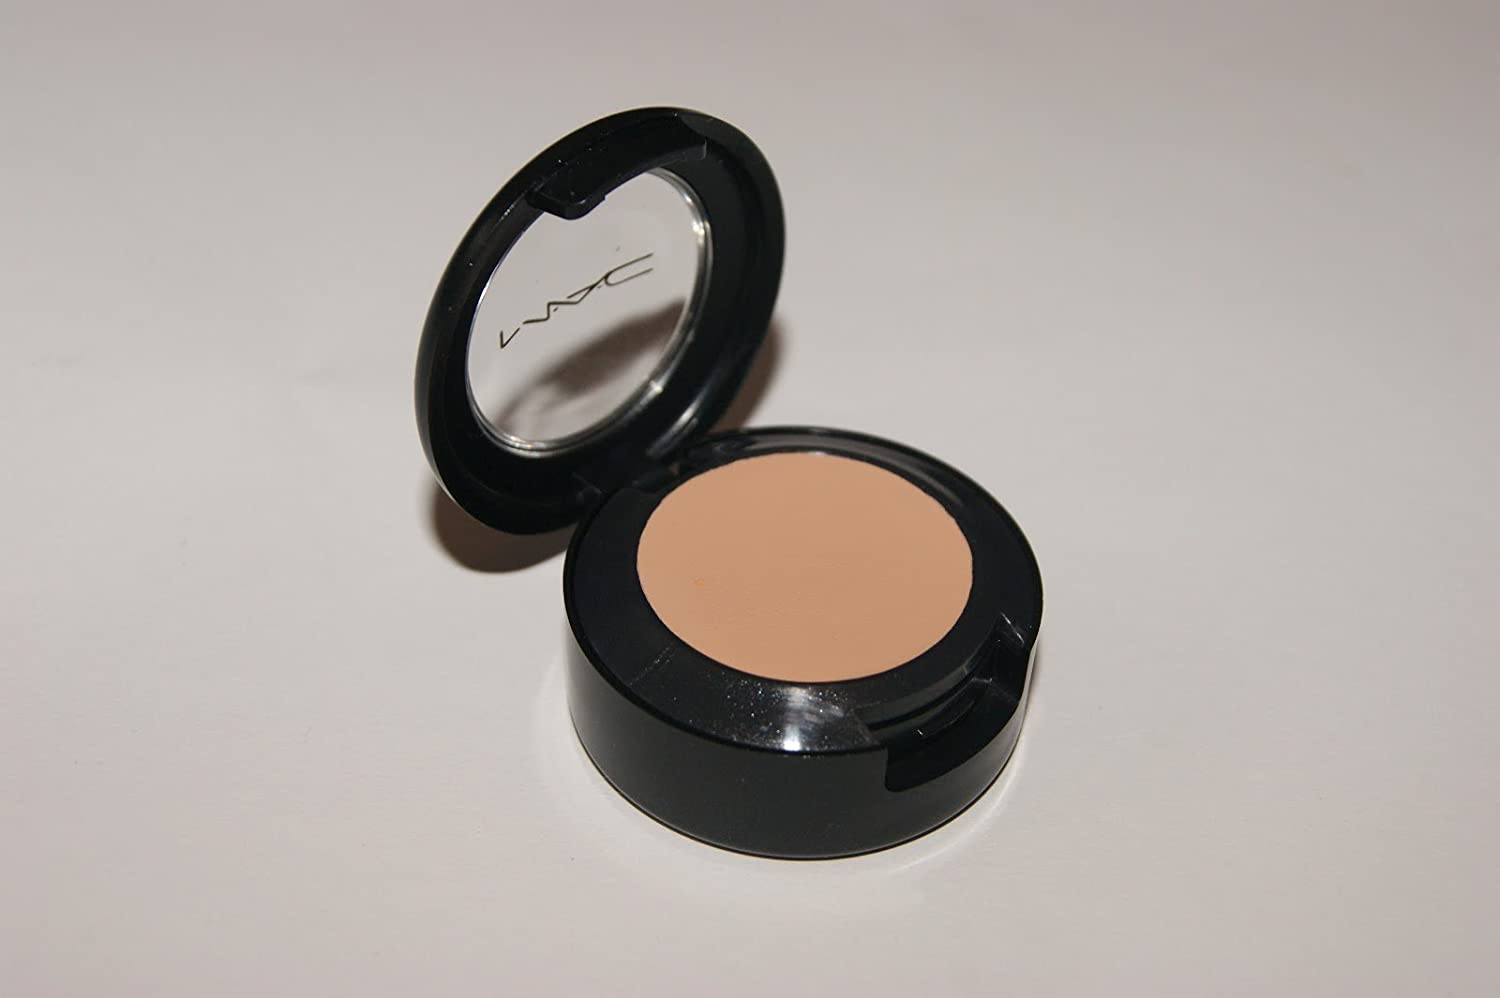 mac studio fix concealer nw25